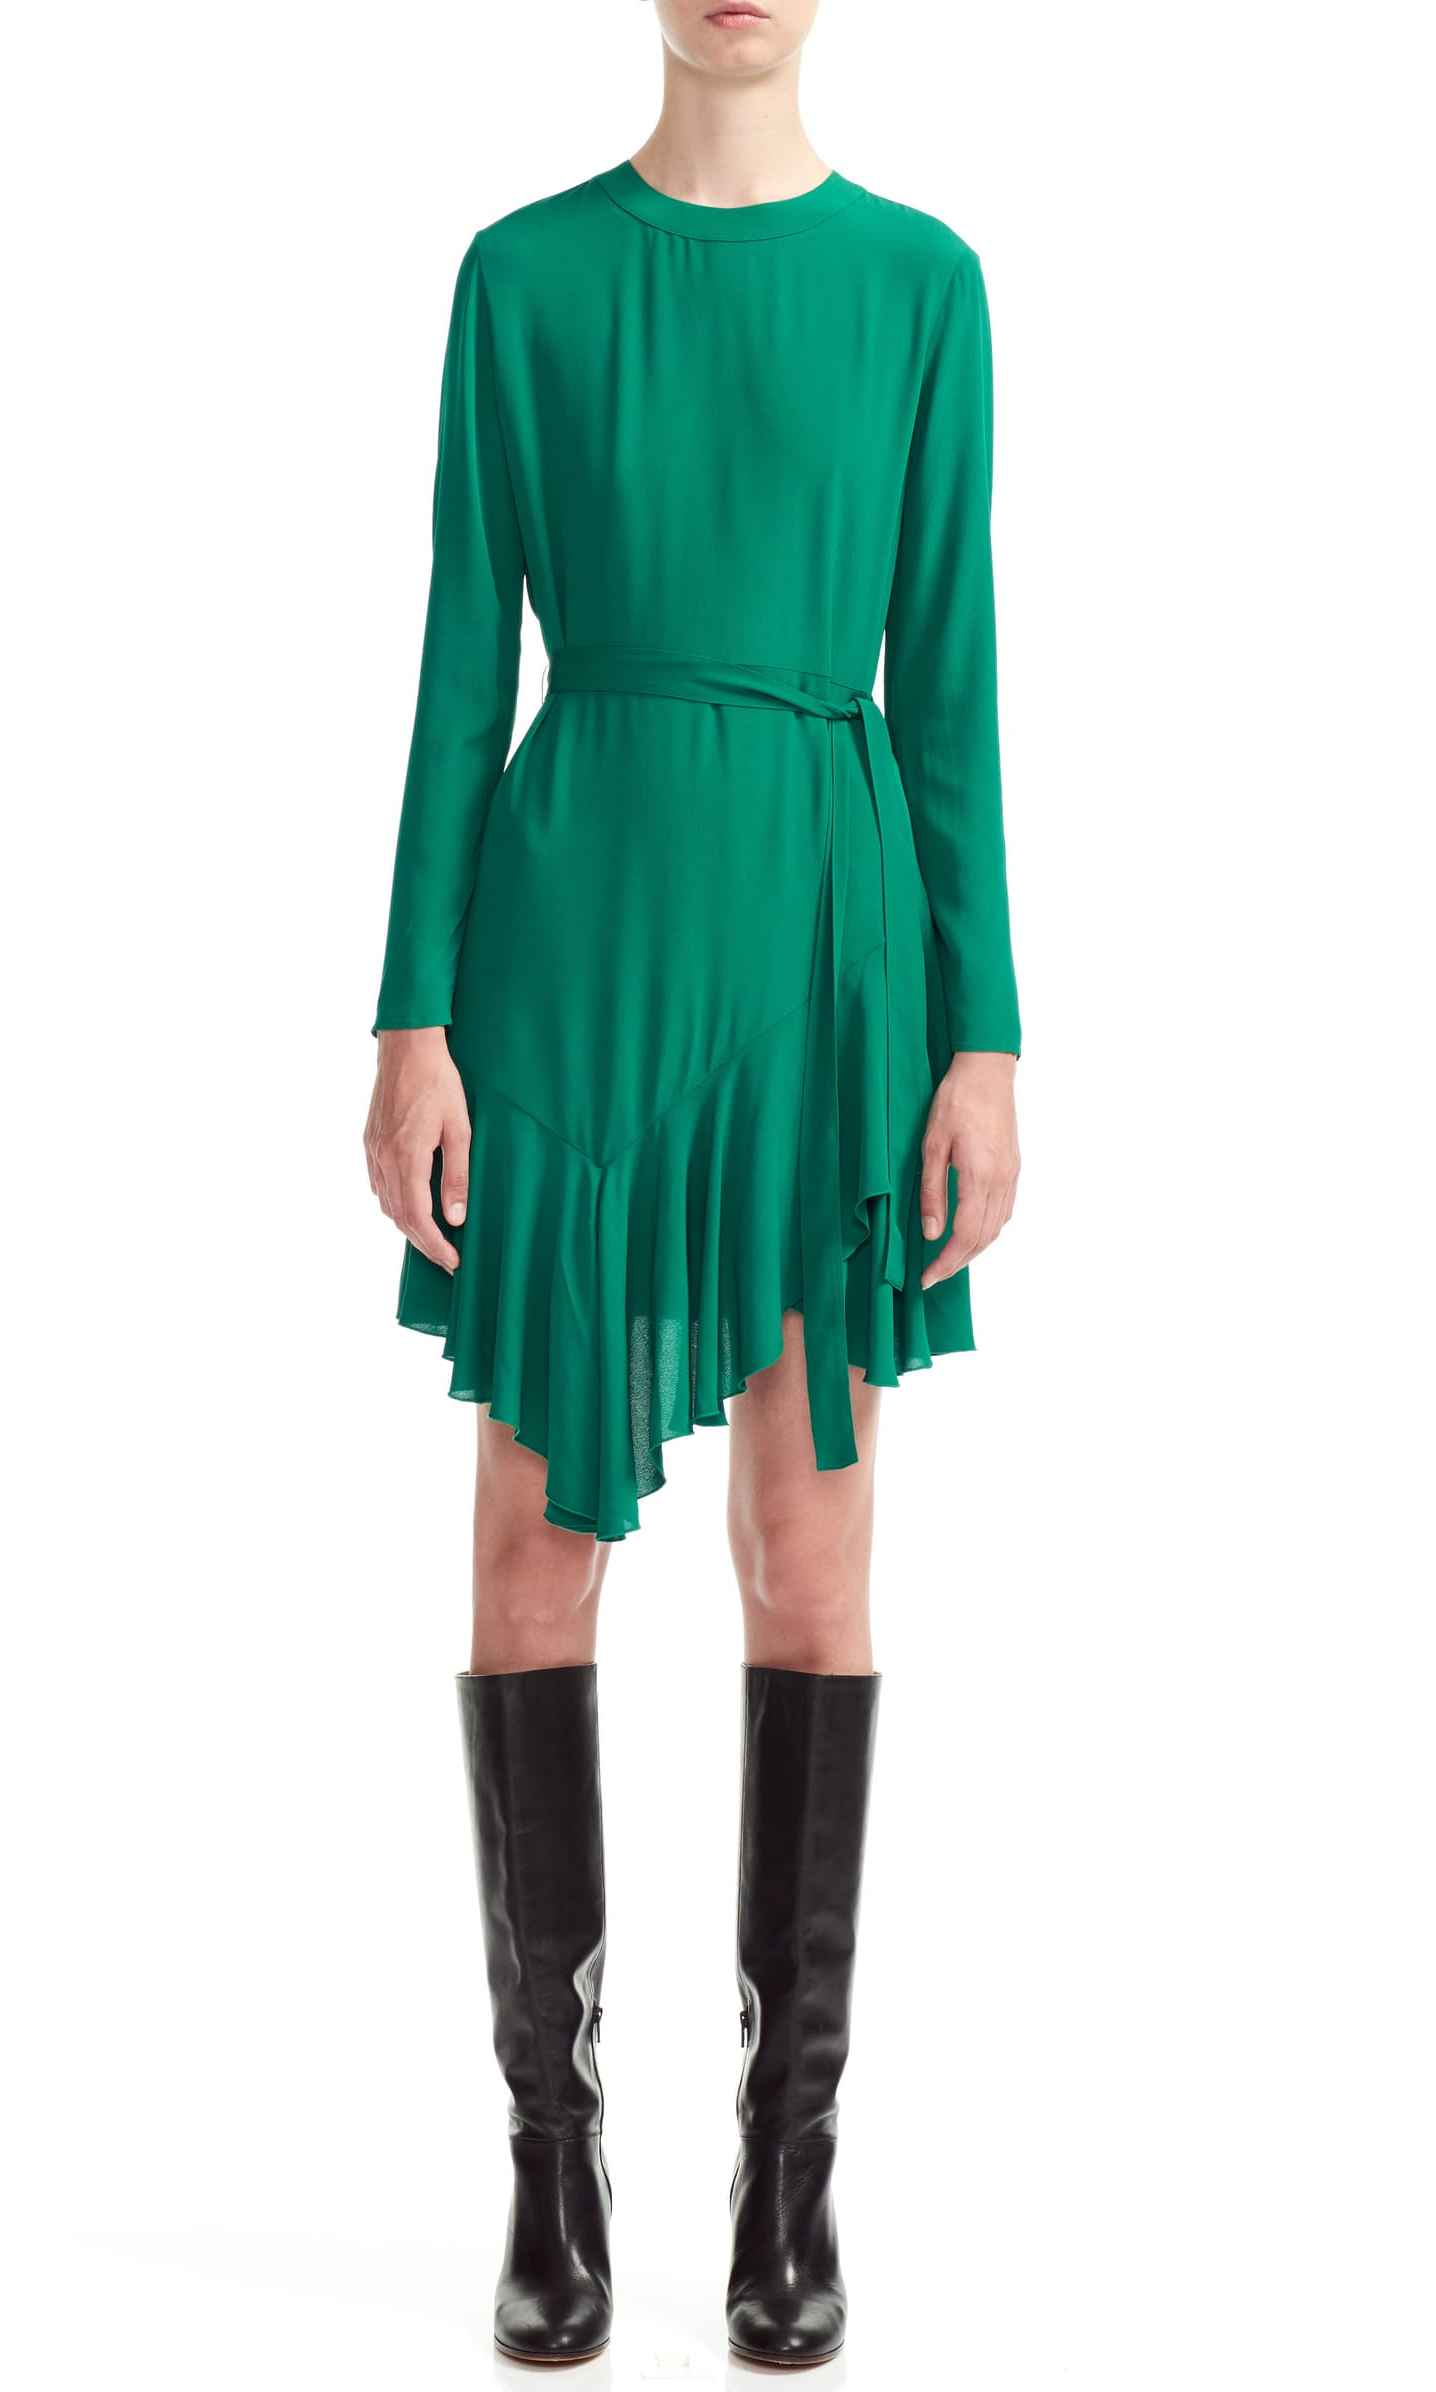 <p>This rich jewel tone will get you noticed! The rounded neckline gives way to a belted waist and an uneven ruffle skirt.